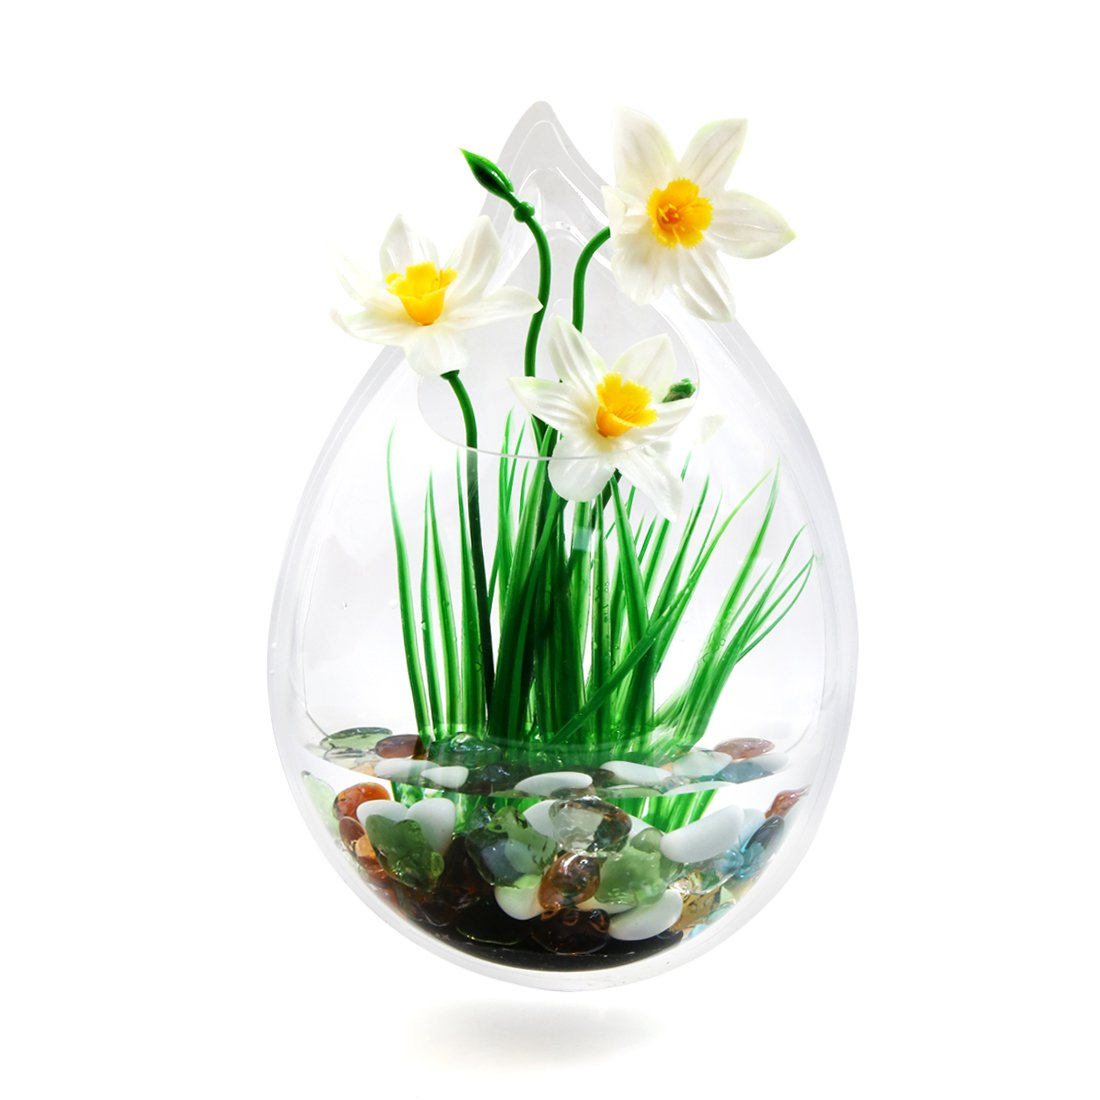 uxcell Acrylic Wall Mounted Hanging Fishbowl Plant Bowl 7.9inch High/0.5Gallon